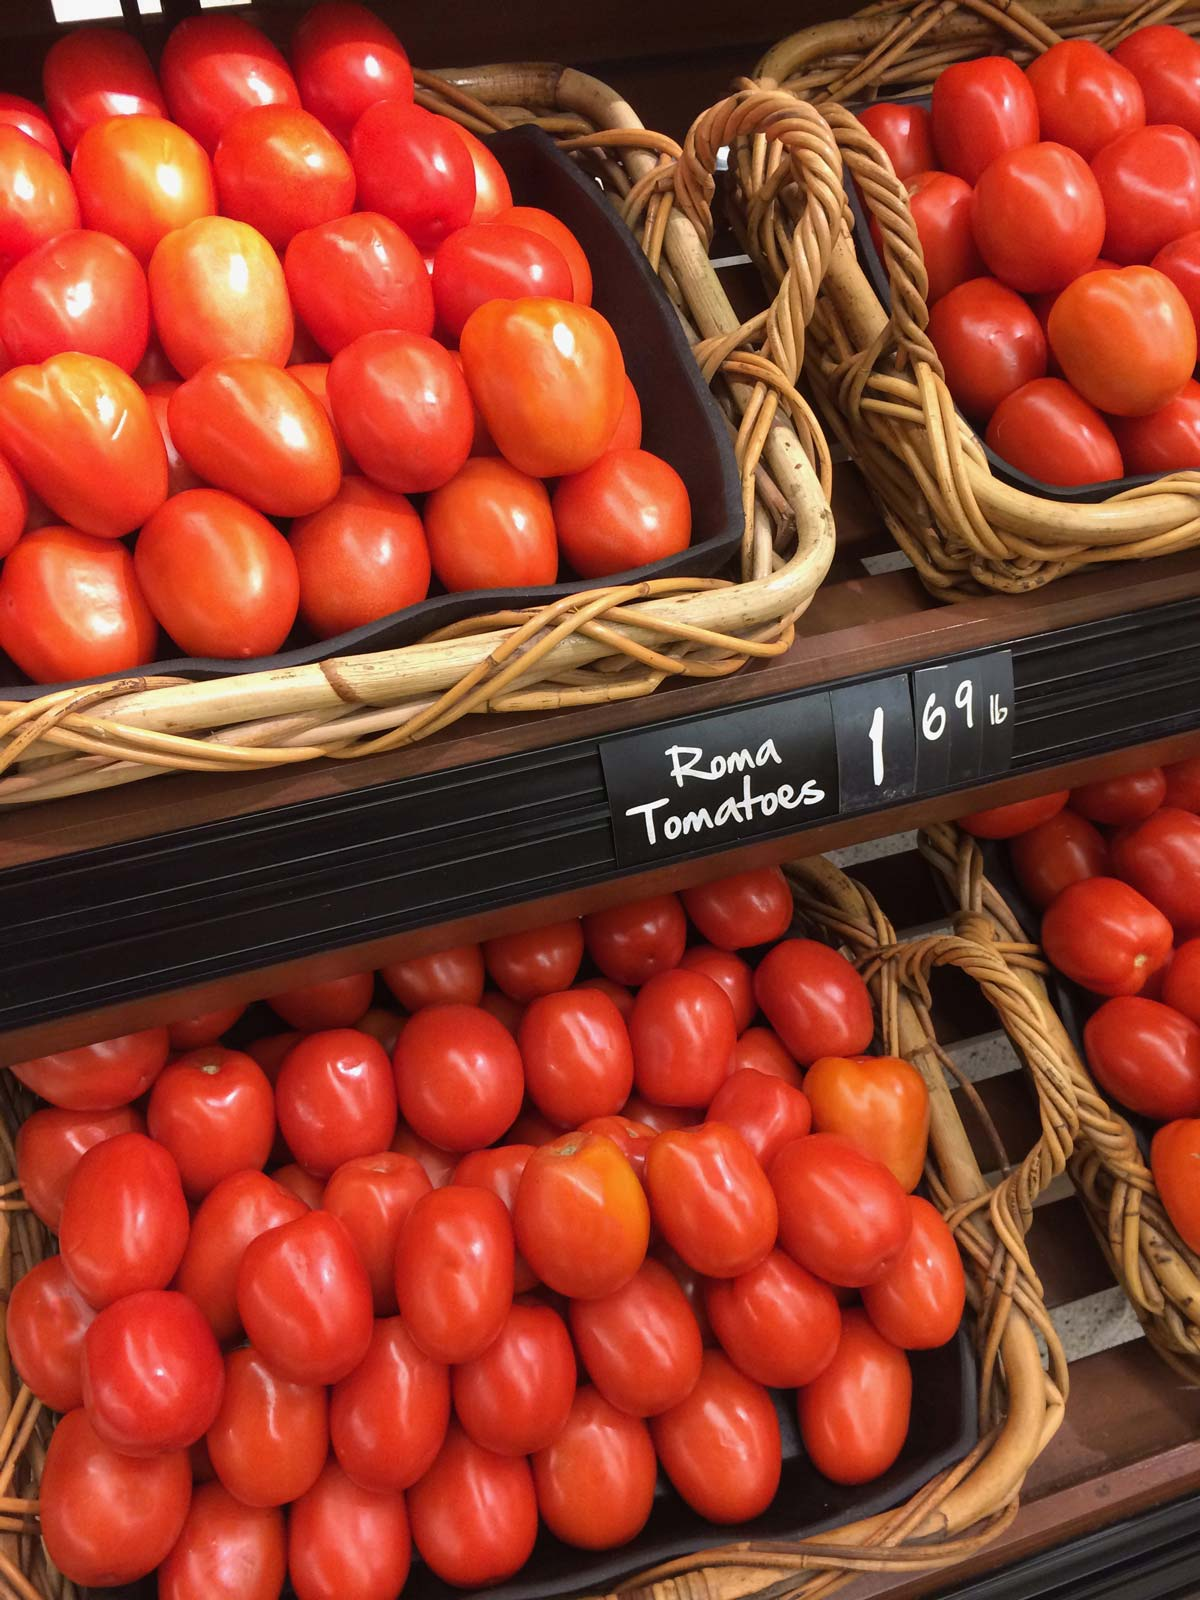 large display of roma tomatoes with price tag at the grocery store.